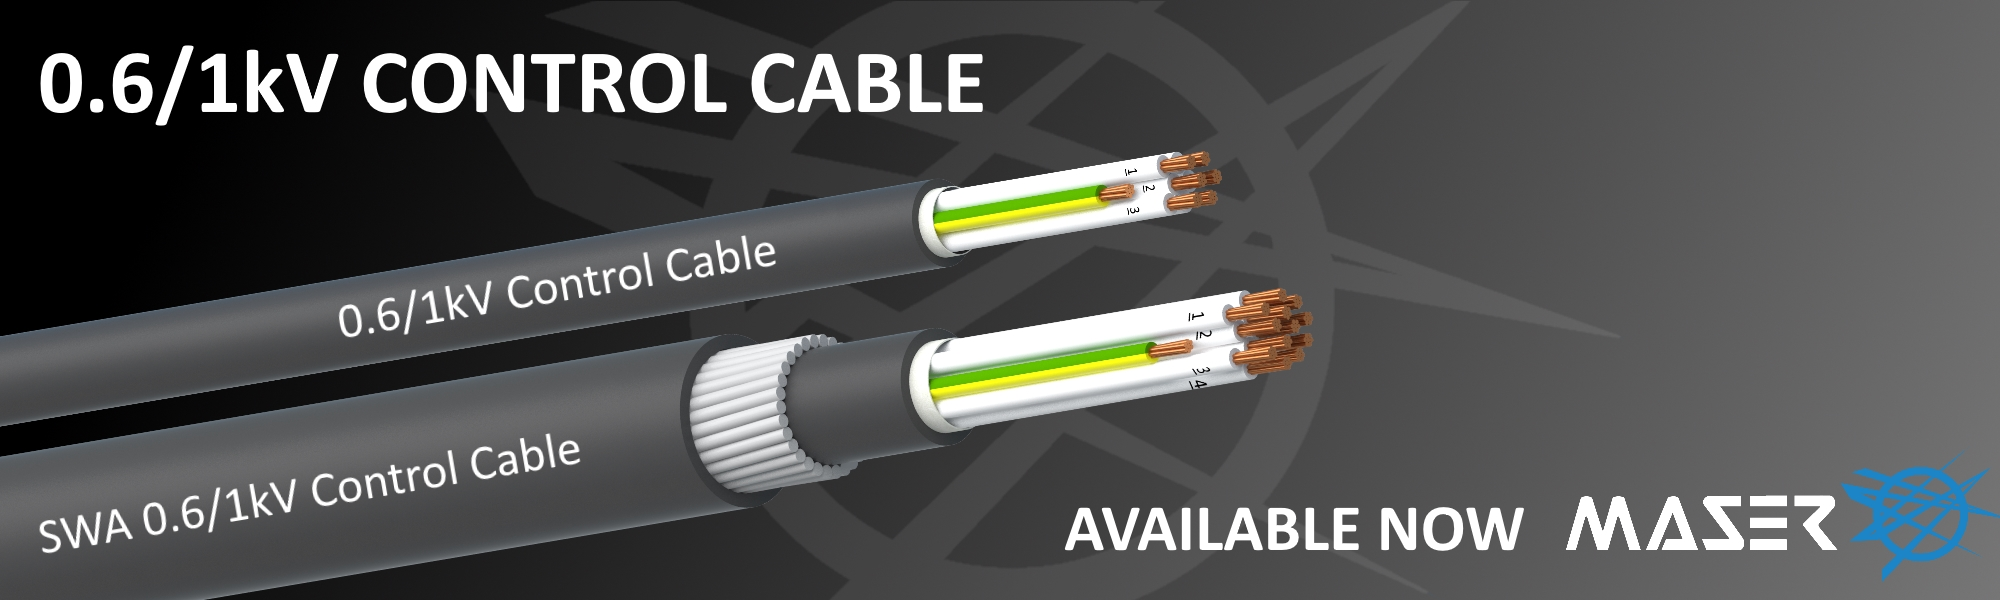 Control Cable Slider